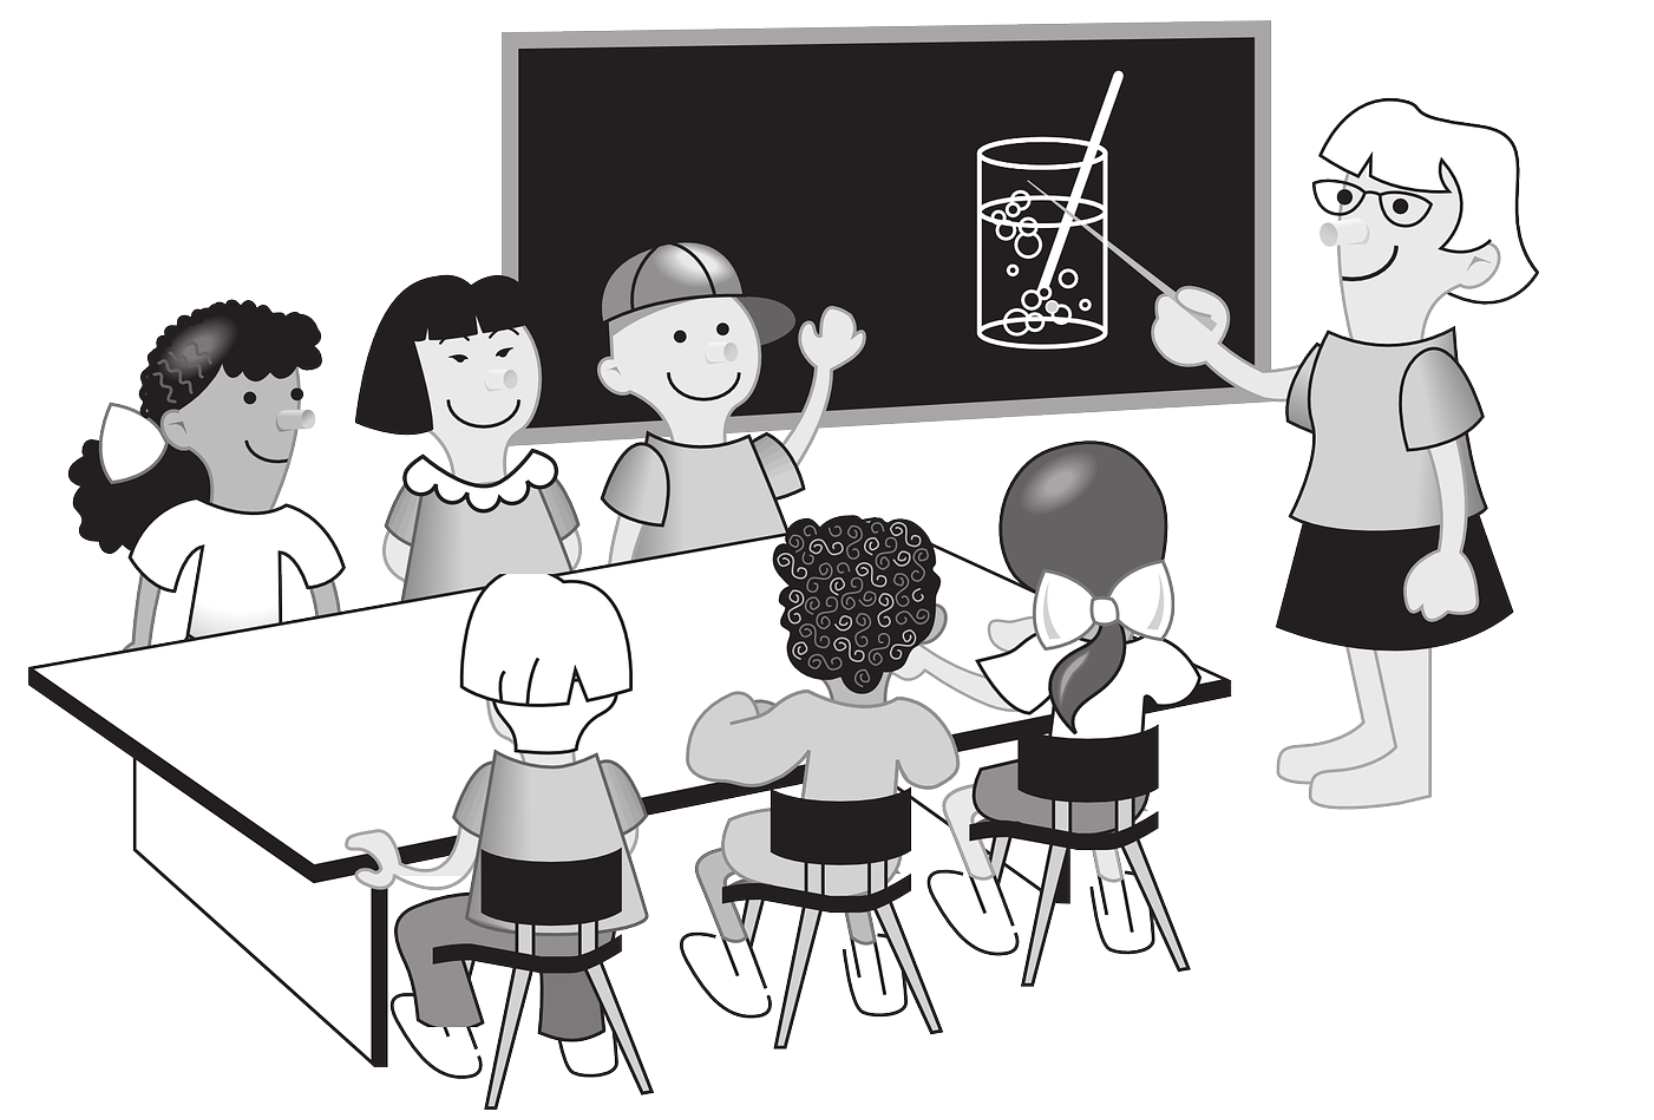 Clipart of teacher standing at black board pointing to content with students sitting around a table.